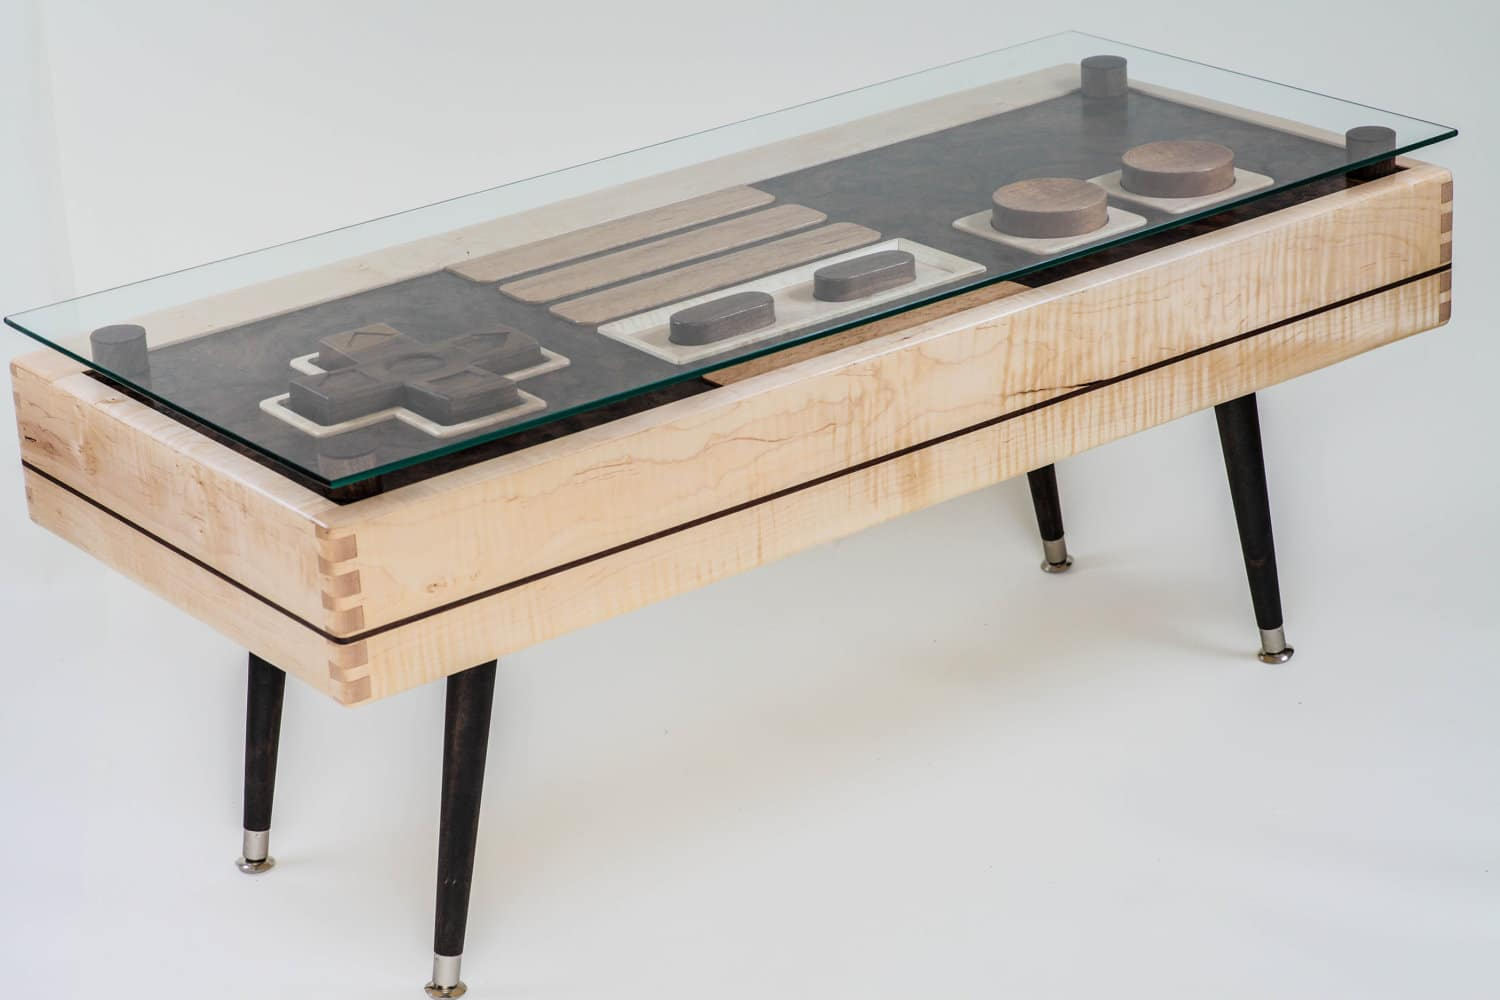 Functional Wooden Nes Controller Coffee Table Available For 3 700